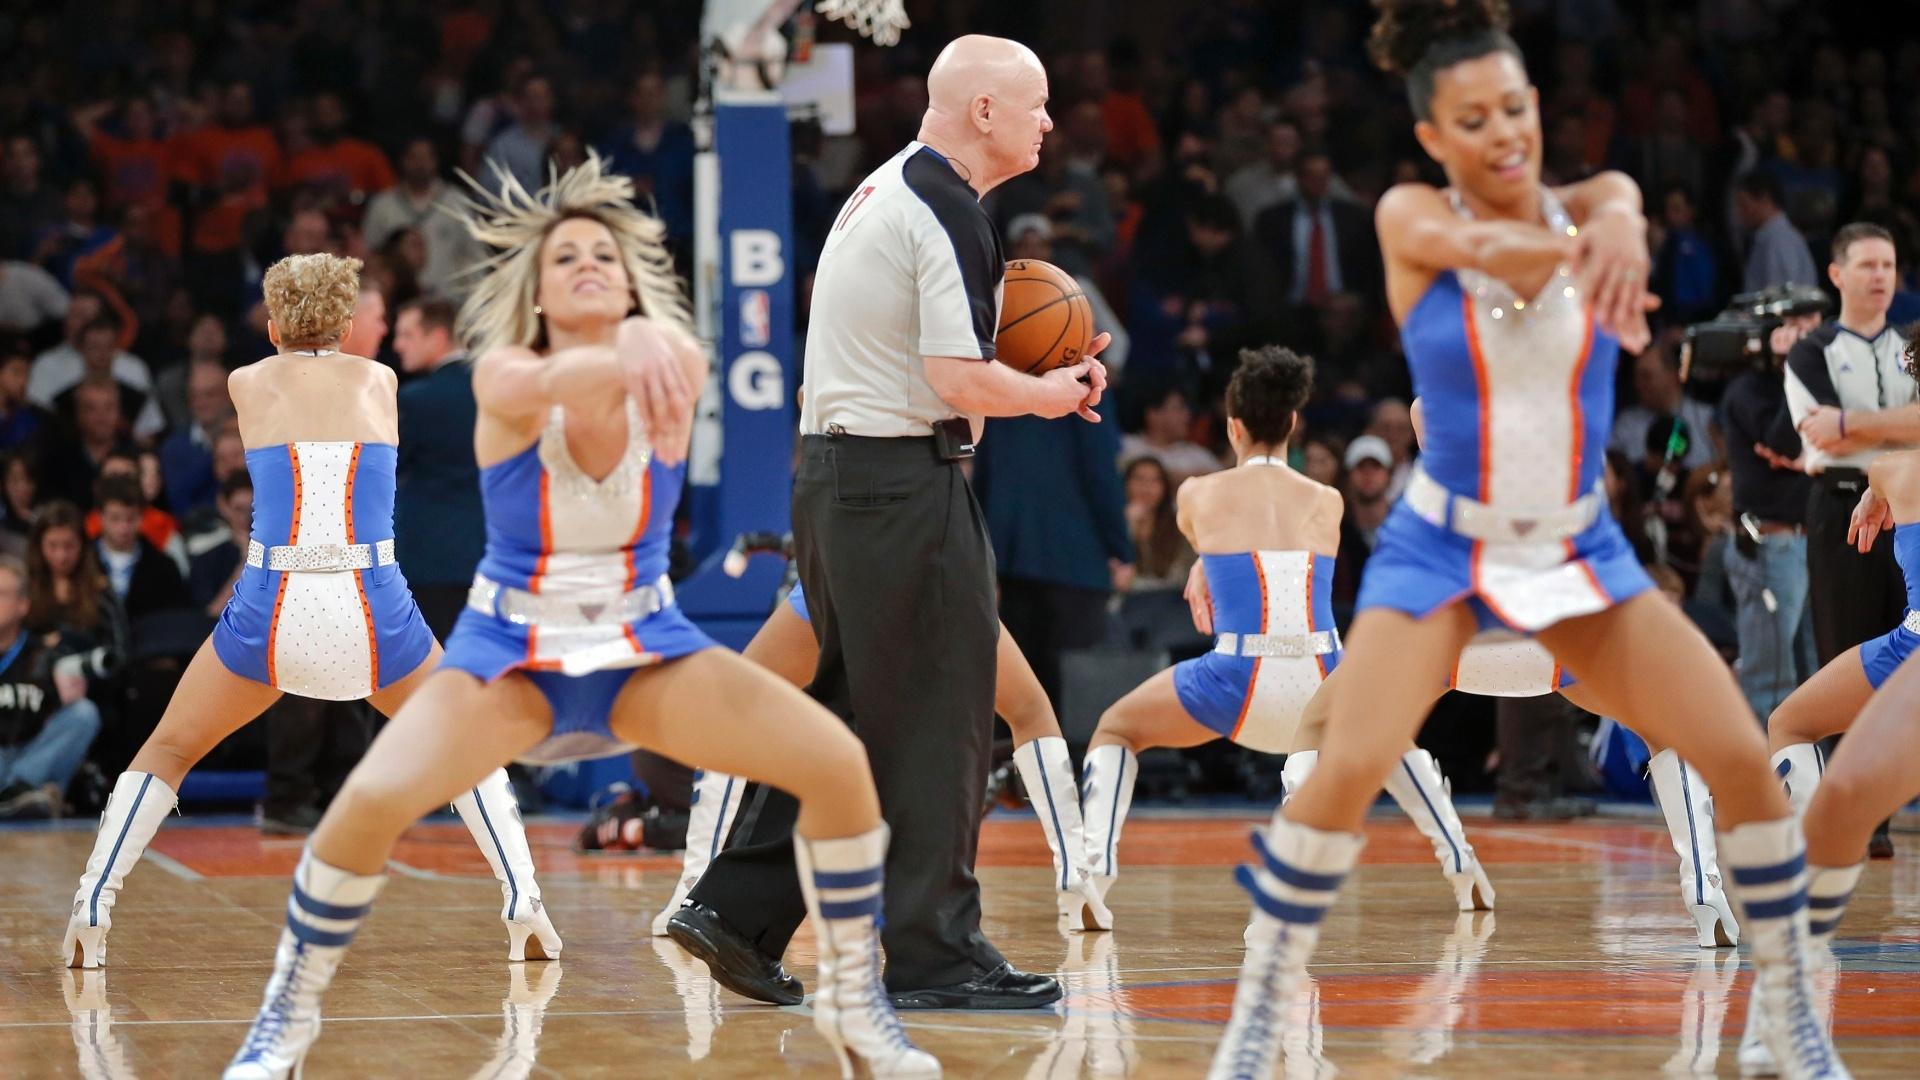 11.jan.2013 - Árbitro Joe Crawford cruza apresentação de cheerleaders do New York Knicks em partida contra o Chicago Bulls no Madison Square Garden